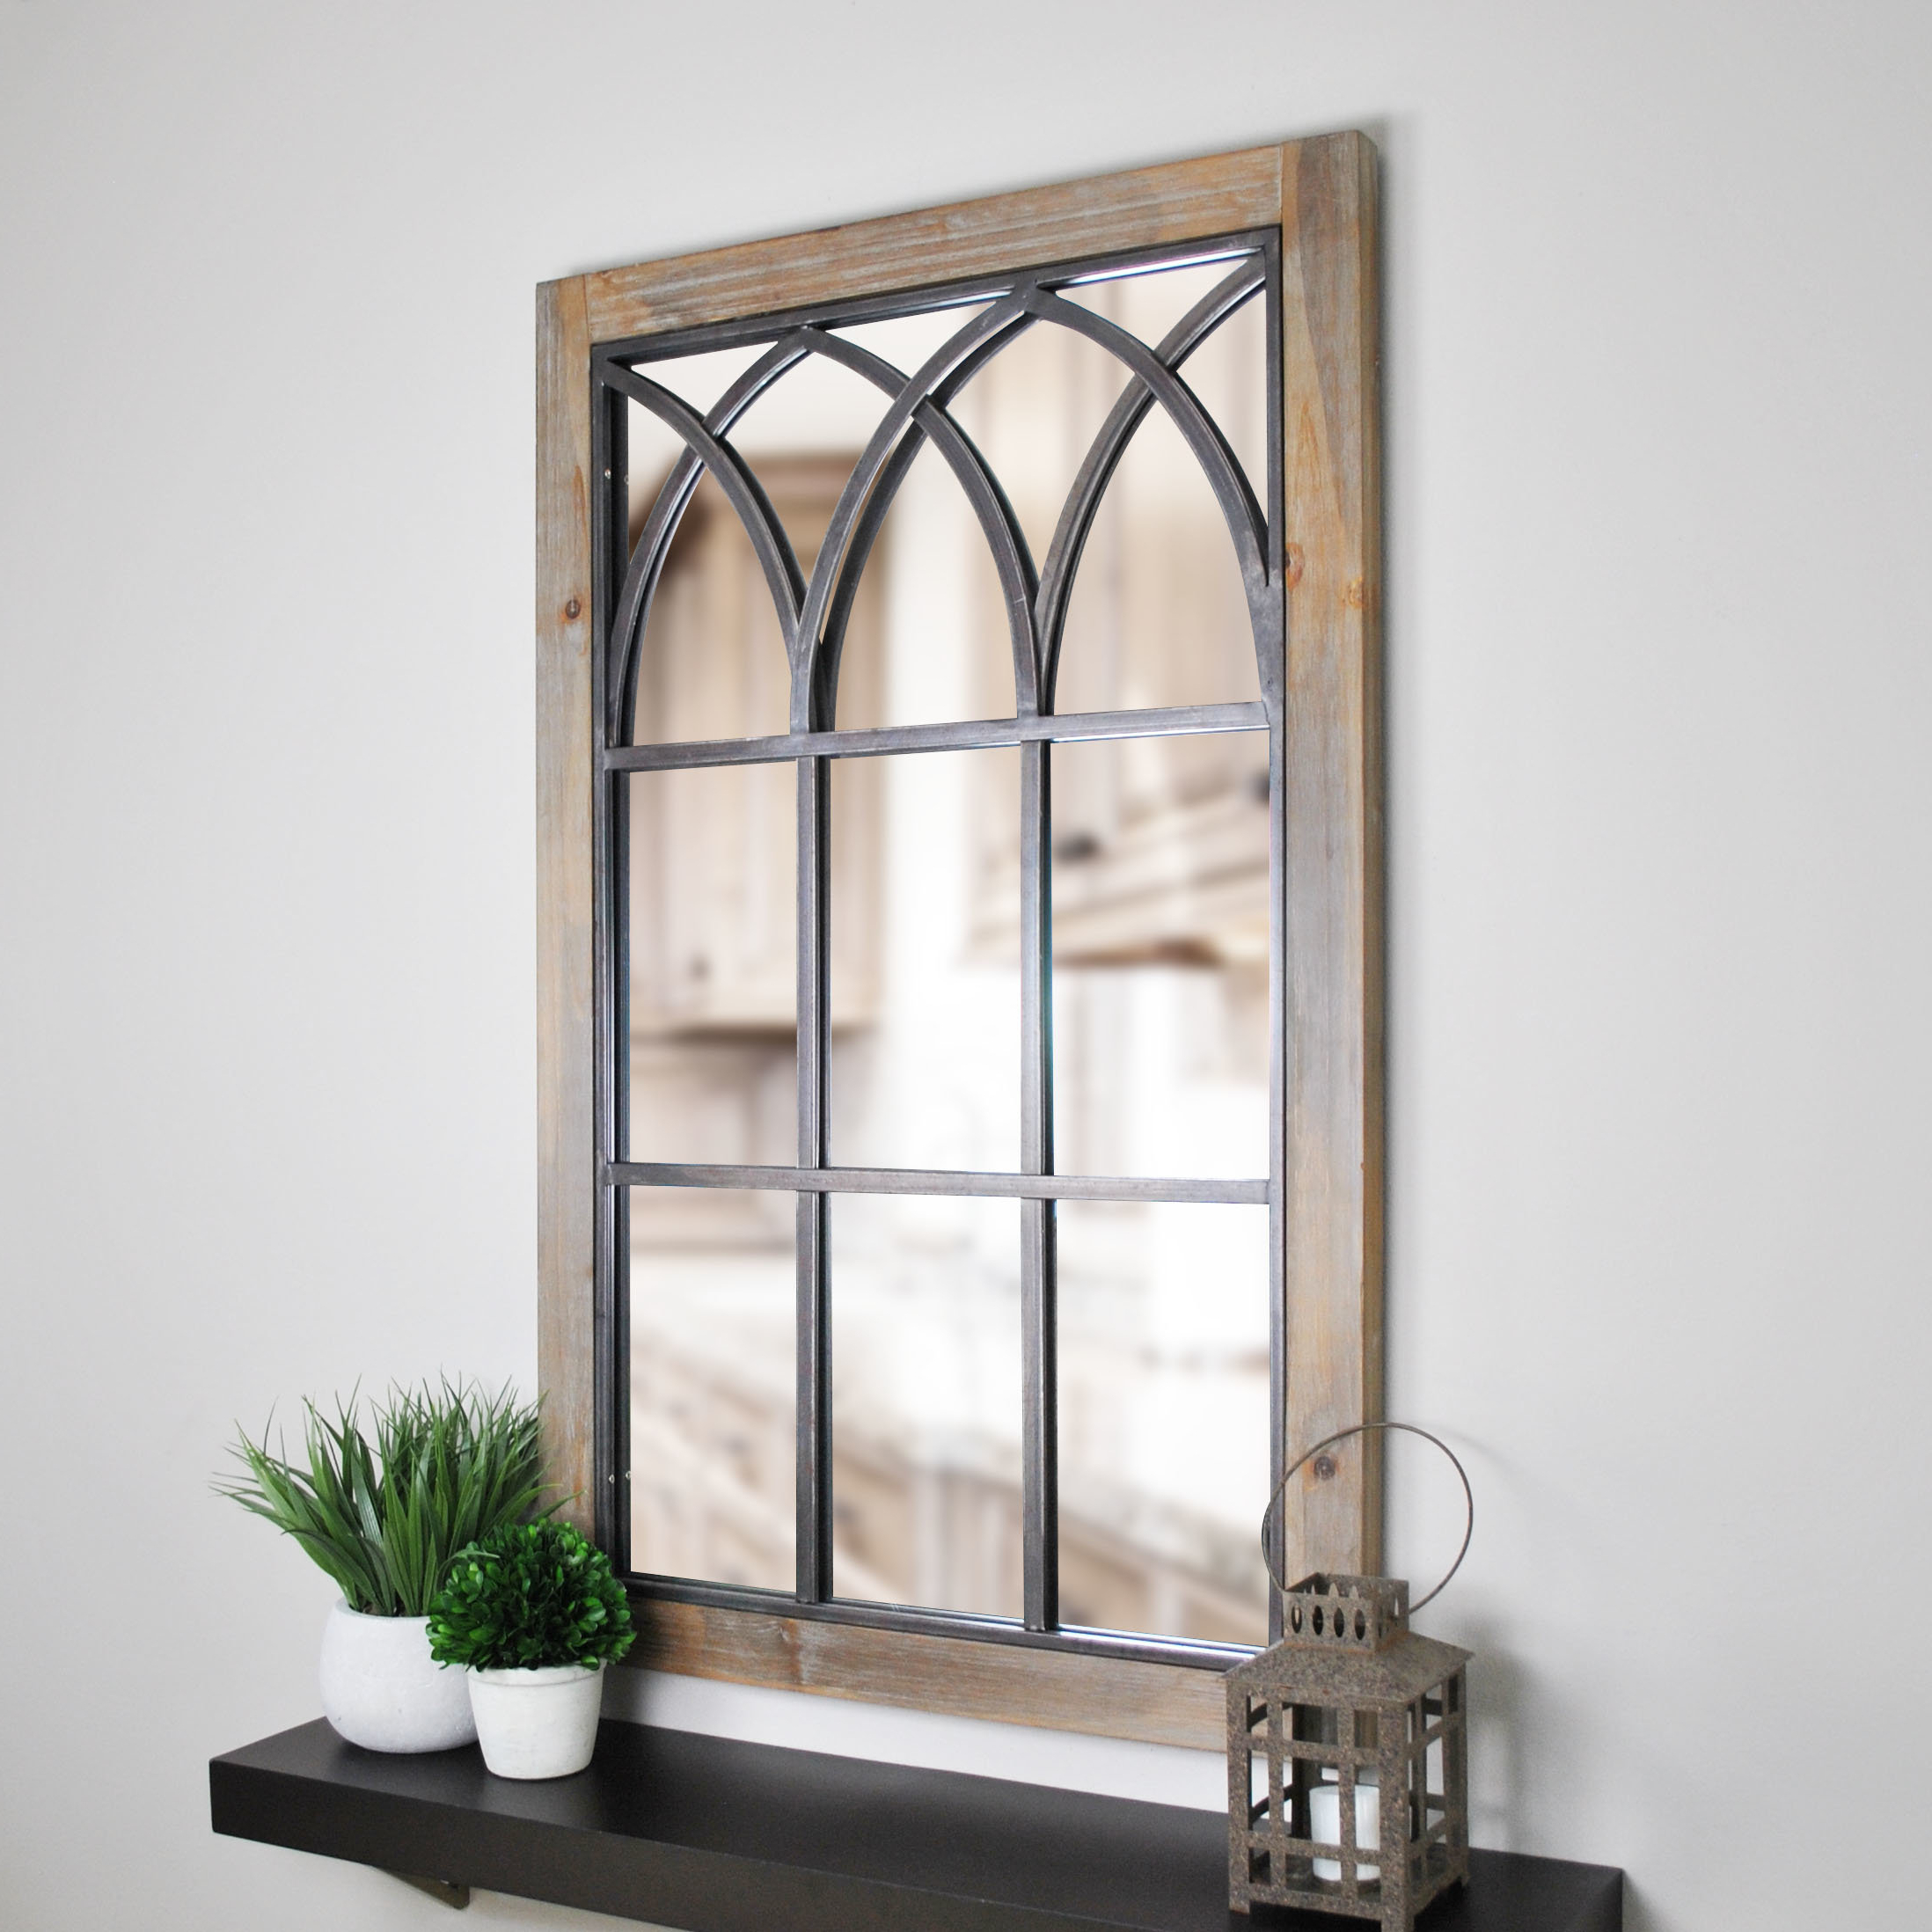 Current Window Accent Mirror & Mercersburg Window Wall Accent Mirror Sc 1 St Intended For Laurel Foundry Modern & Contemporary Accent Mirrors (View 17 of 20)